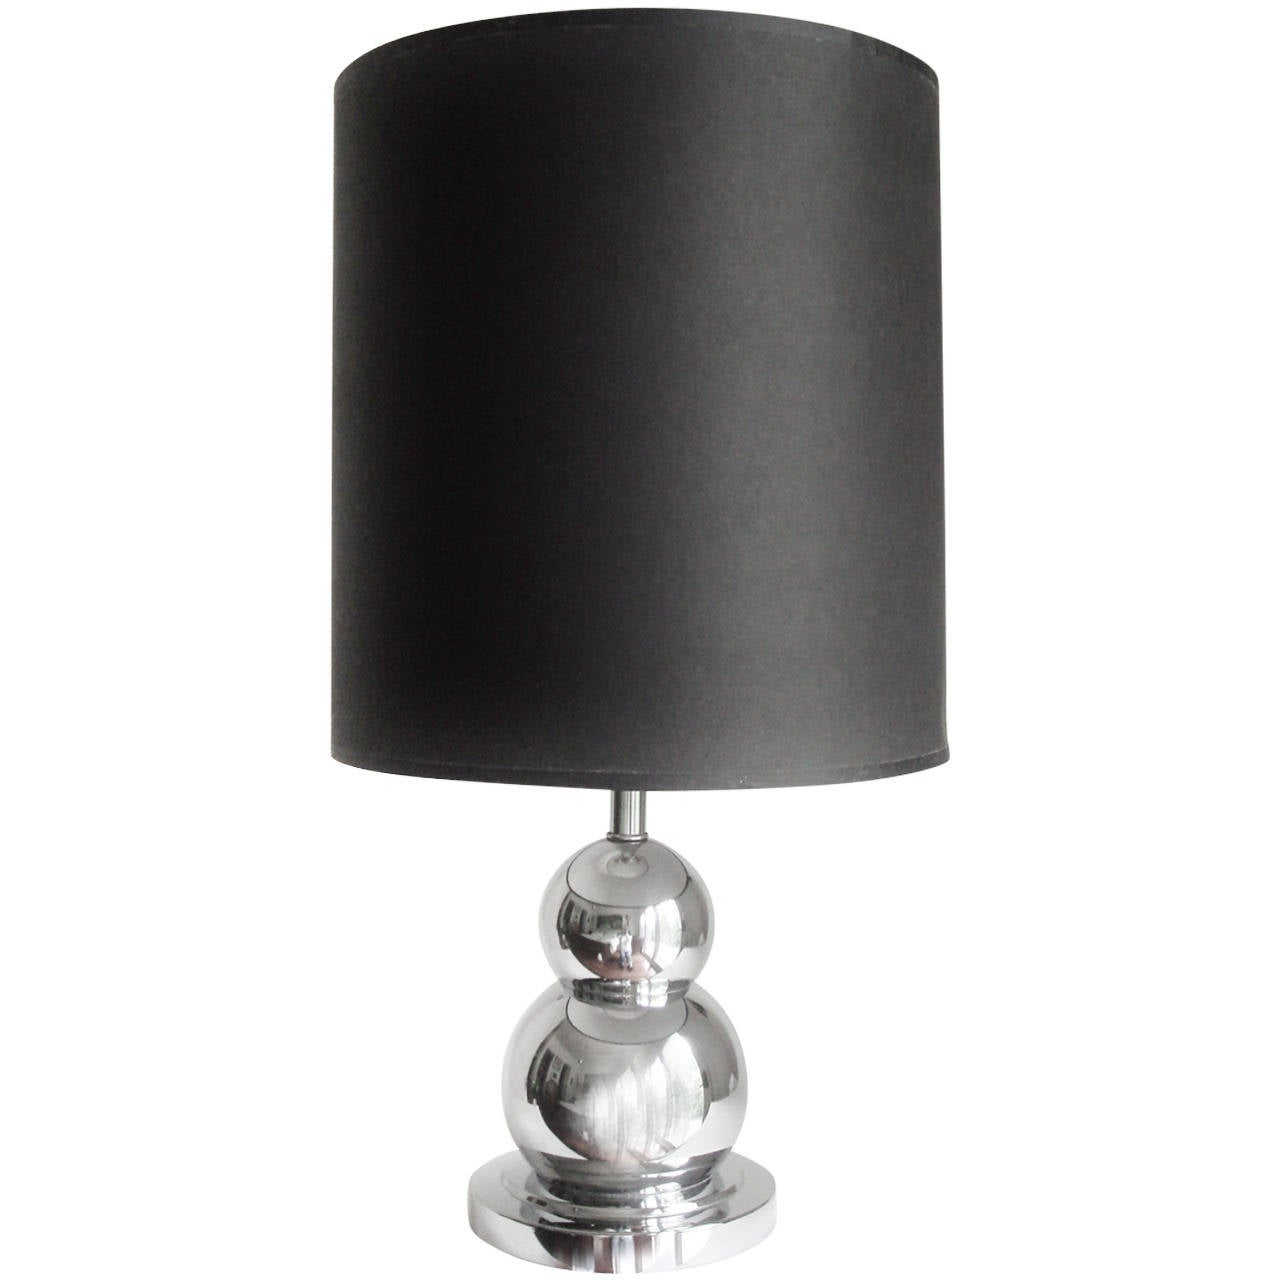 Graduatedamp; Canadian Stacked Table 60's Two Chrome Spheres Lamp srdCthQx